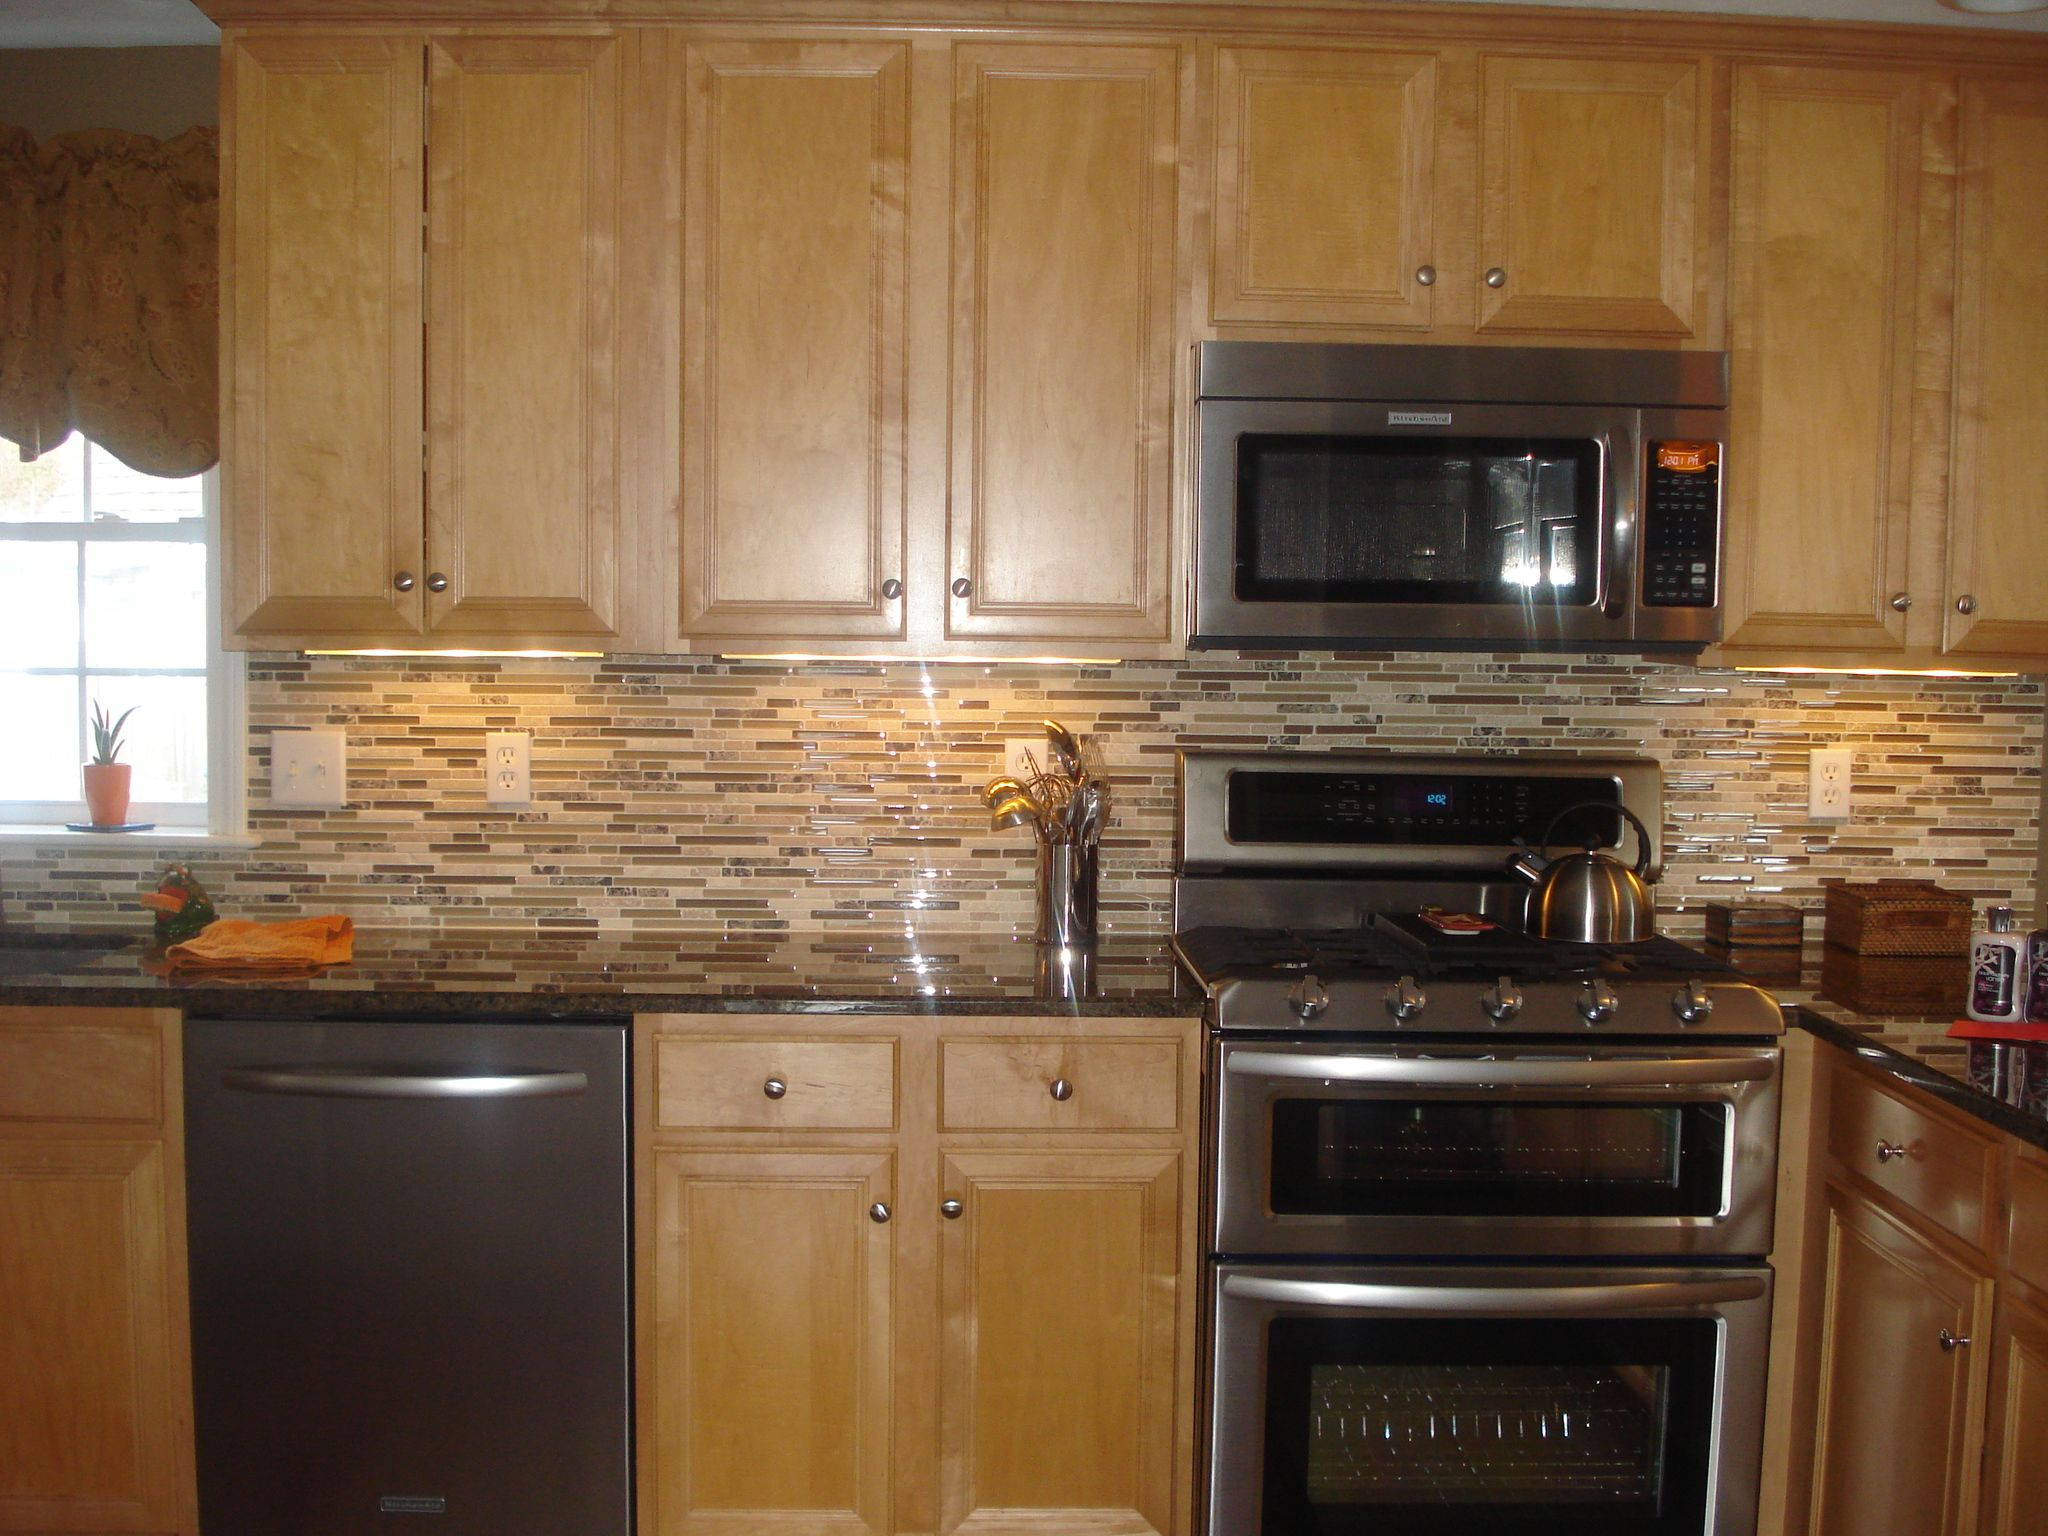 Kitchen Design Ideas Light Cabinets backsplash glass tile brown with brown cabinets |  backsplash